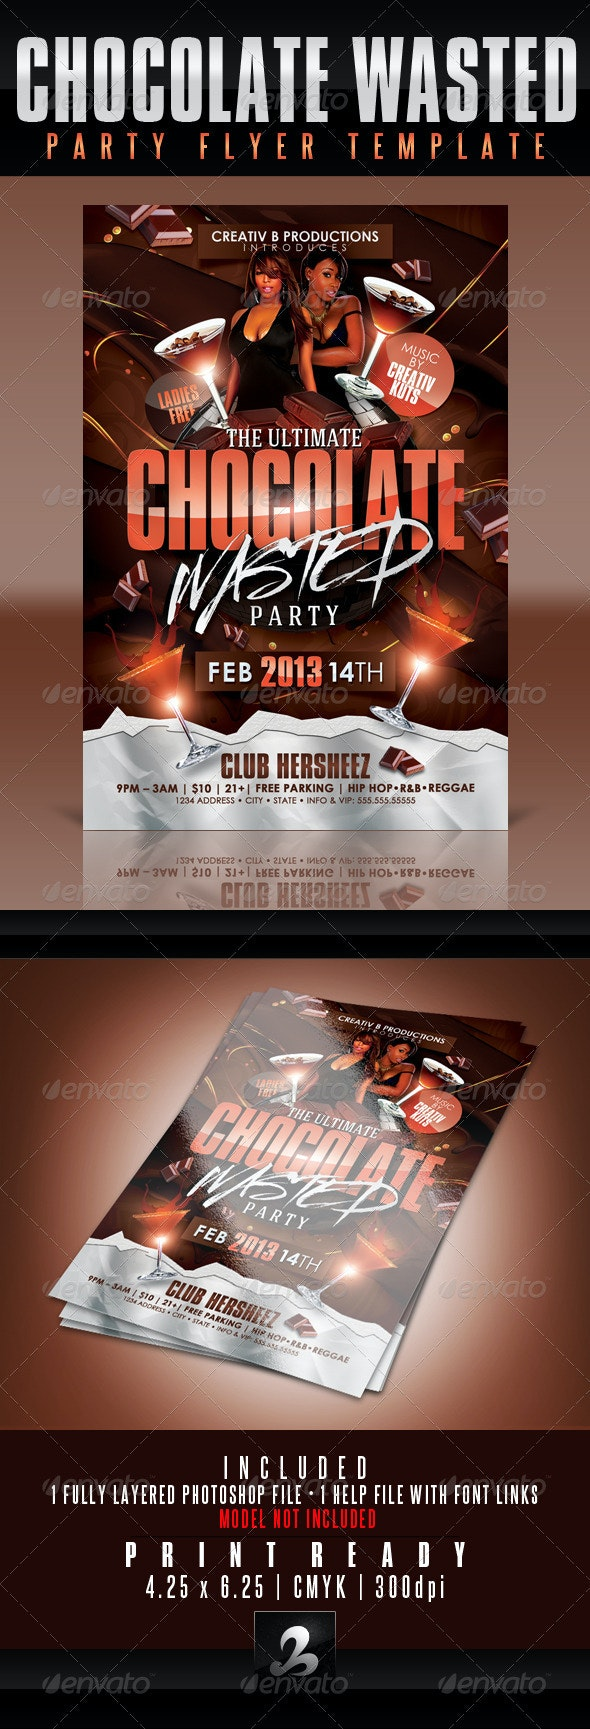 Chocolate Wasted Party Flyer Template - Clubs & Parties Events